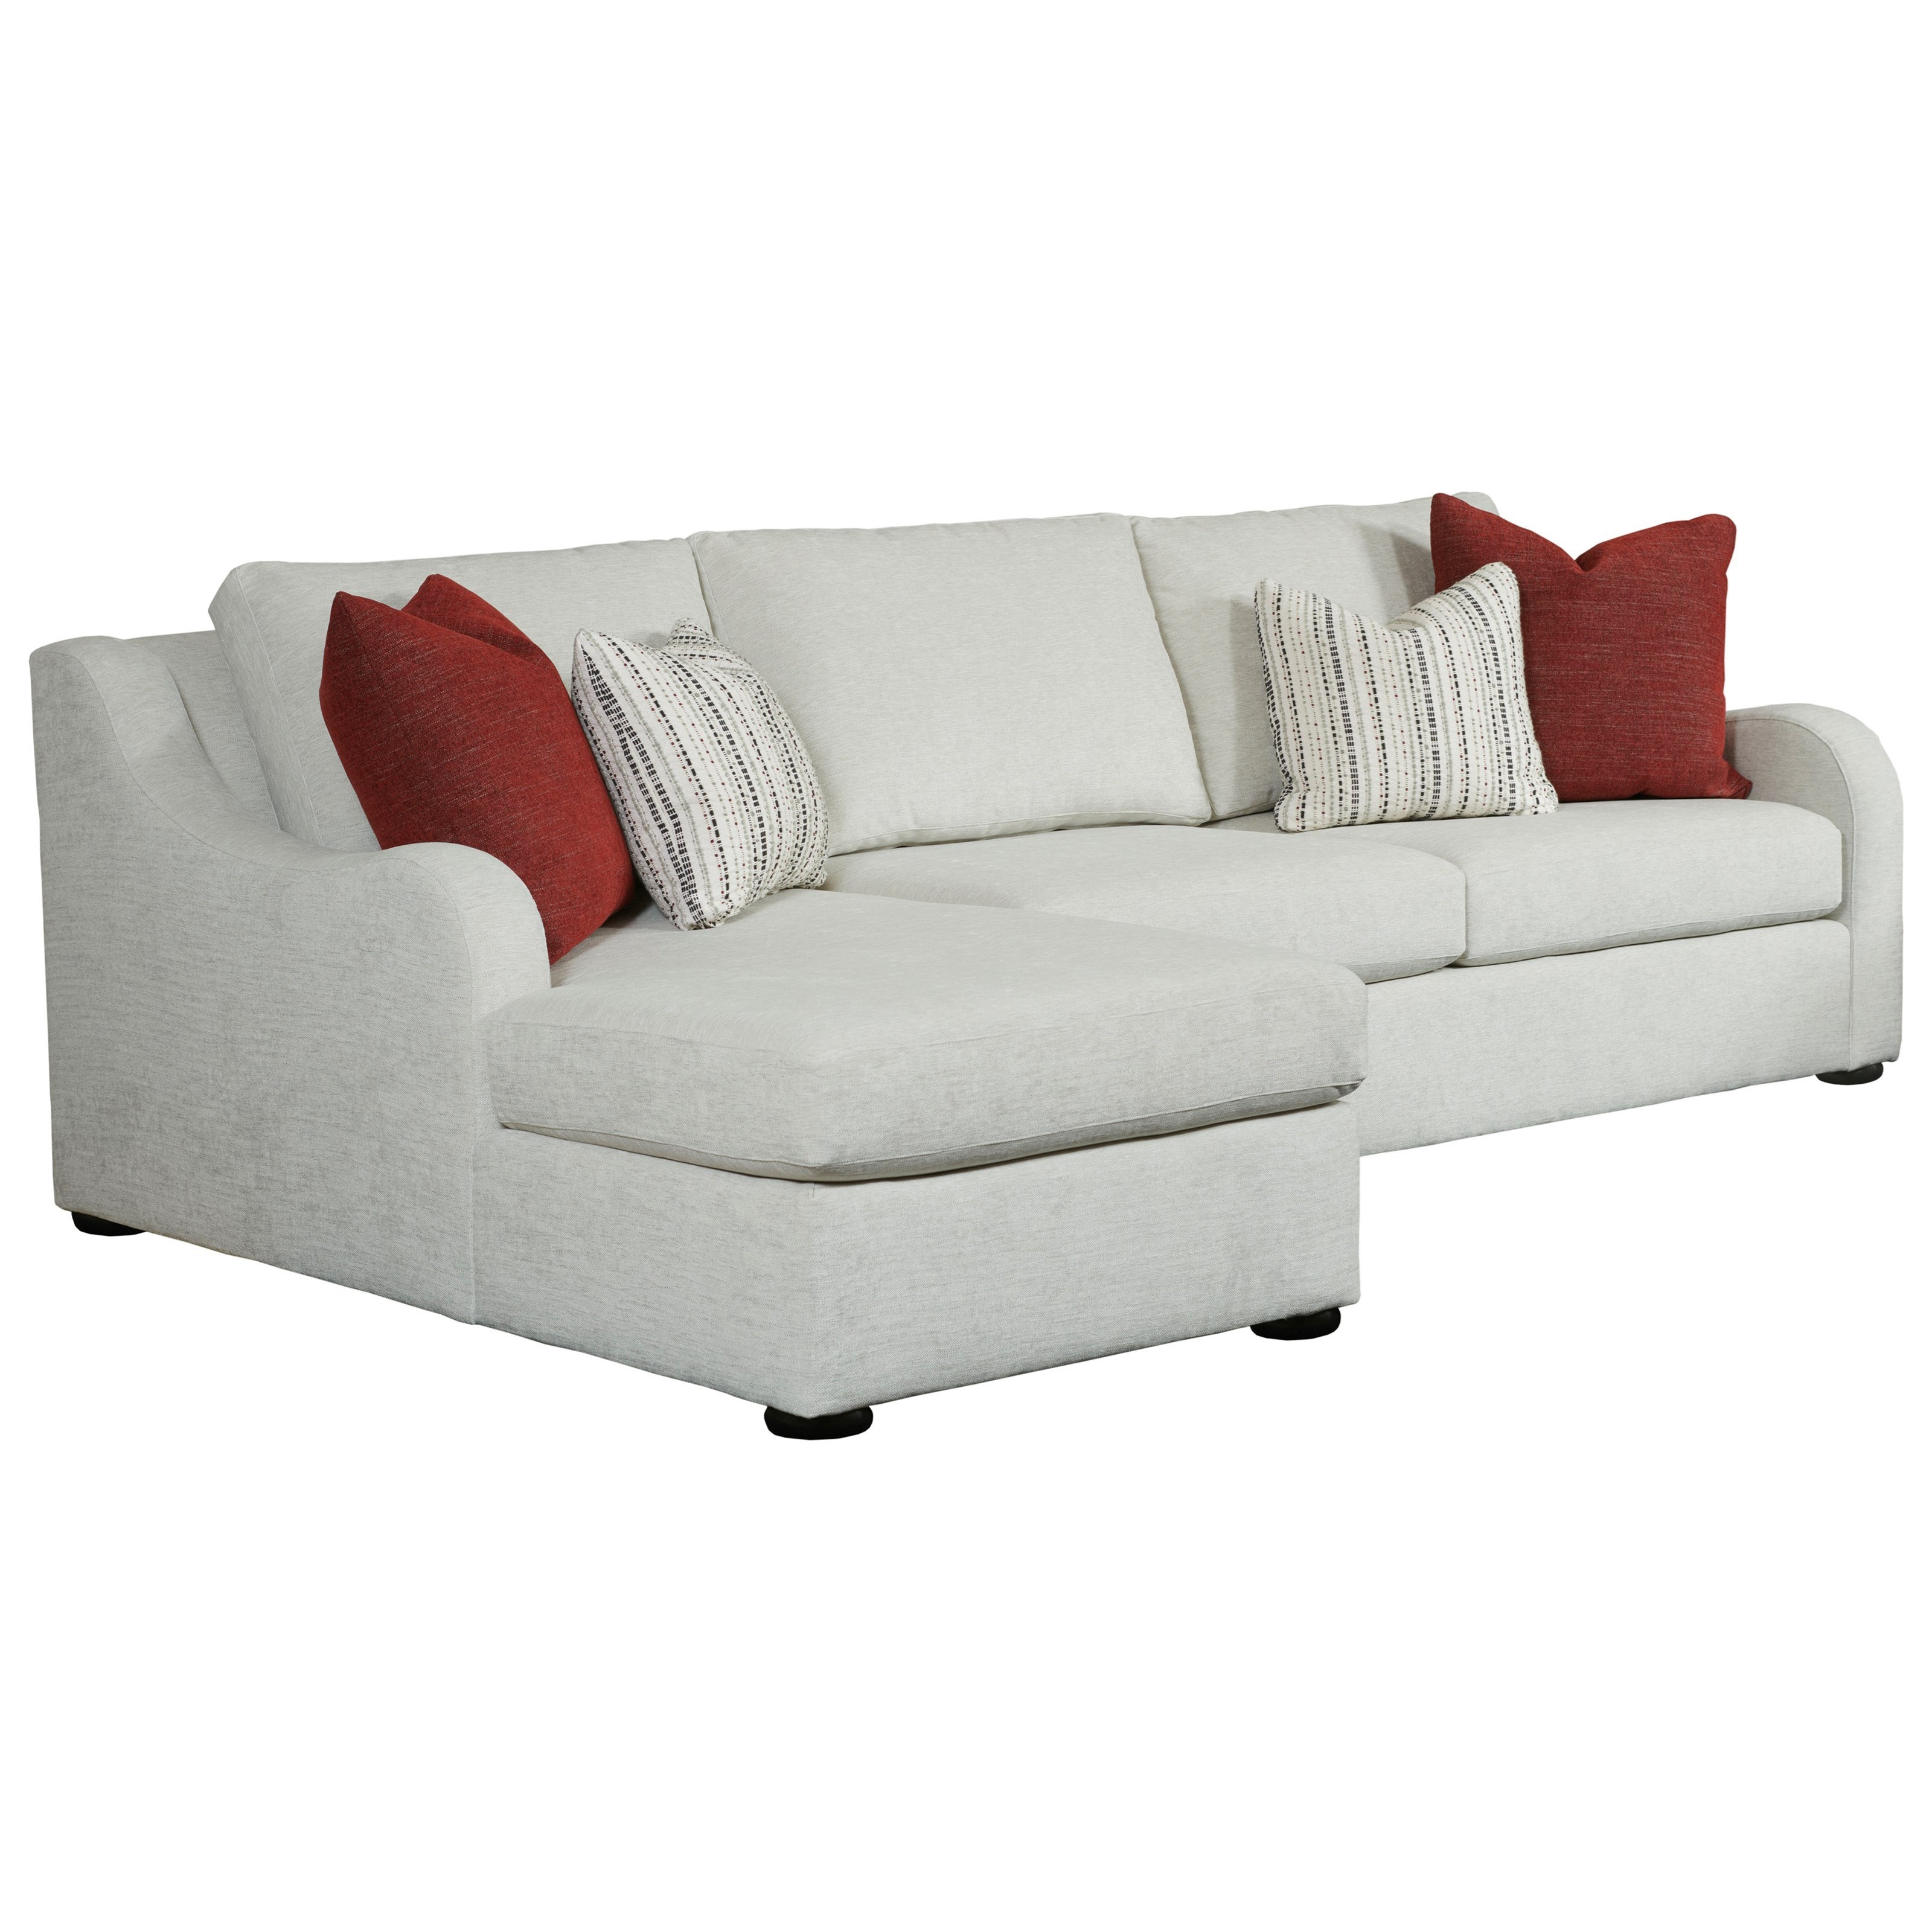 Comfort Select Chaise Sofa by Kincaid Furniture at Powell's Furniture and Mattress